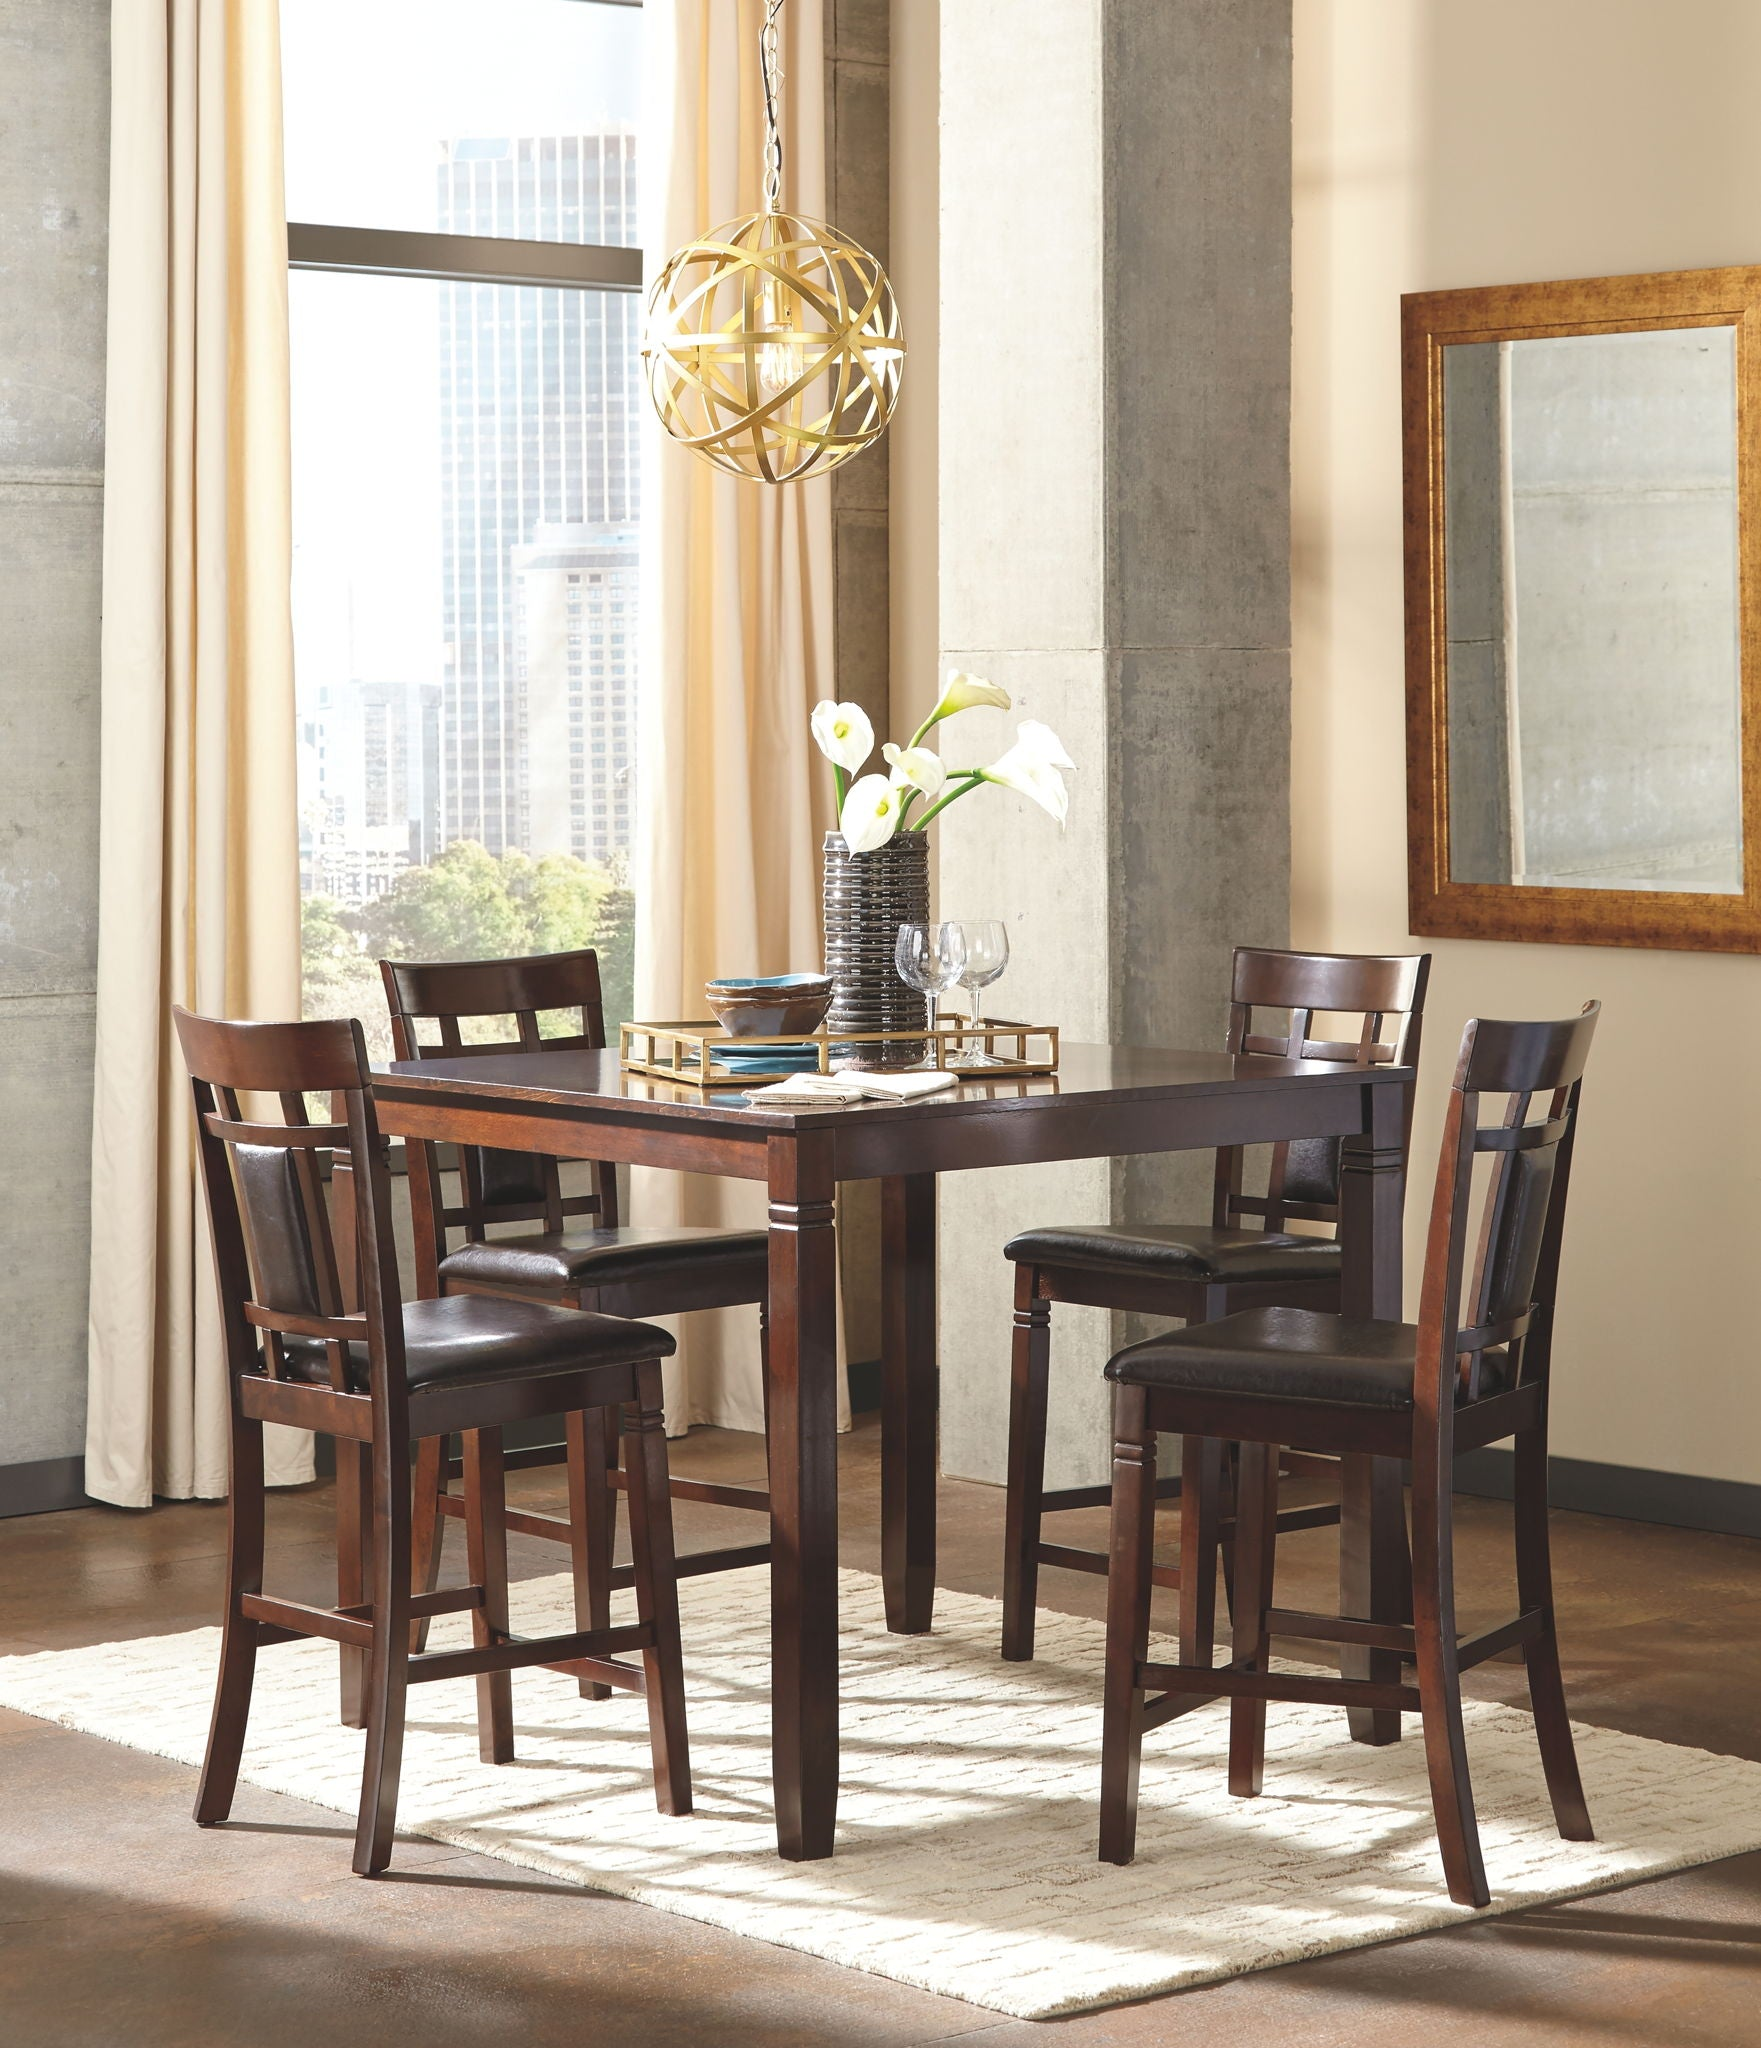 Bennox Counter Height Dining Room Table and Bar Stools (Set of 5) | Calgary's Furniture Store